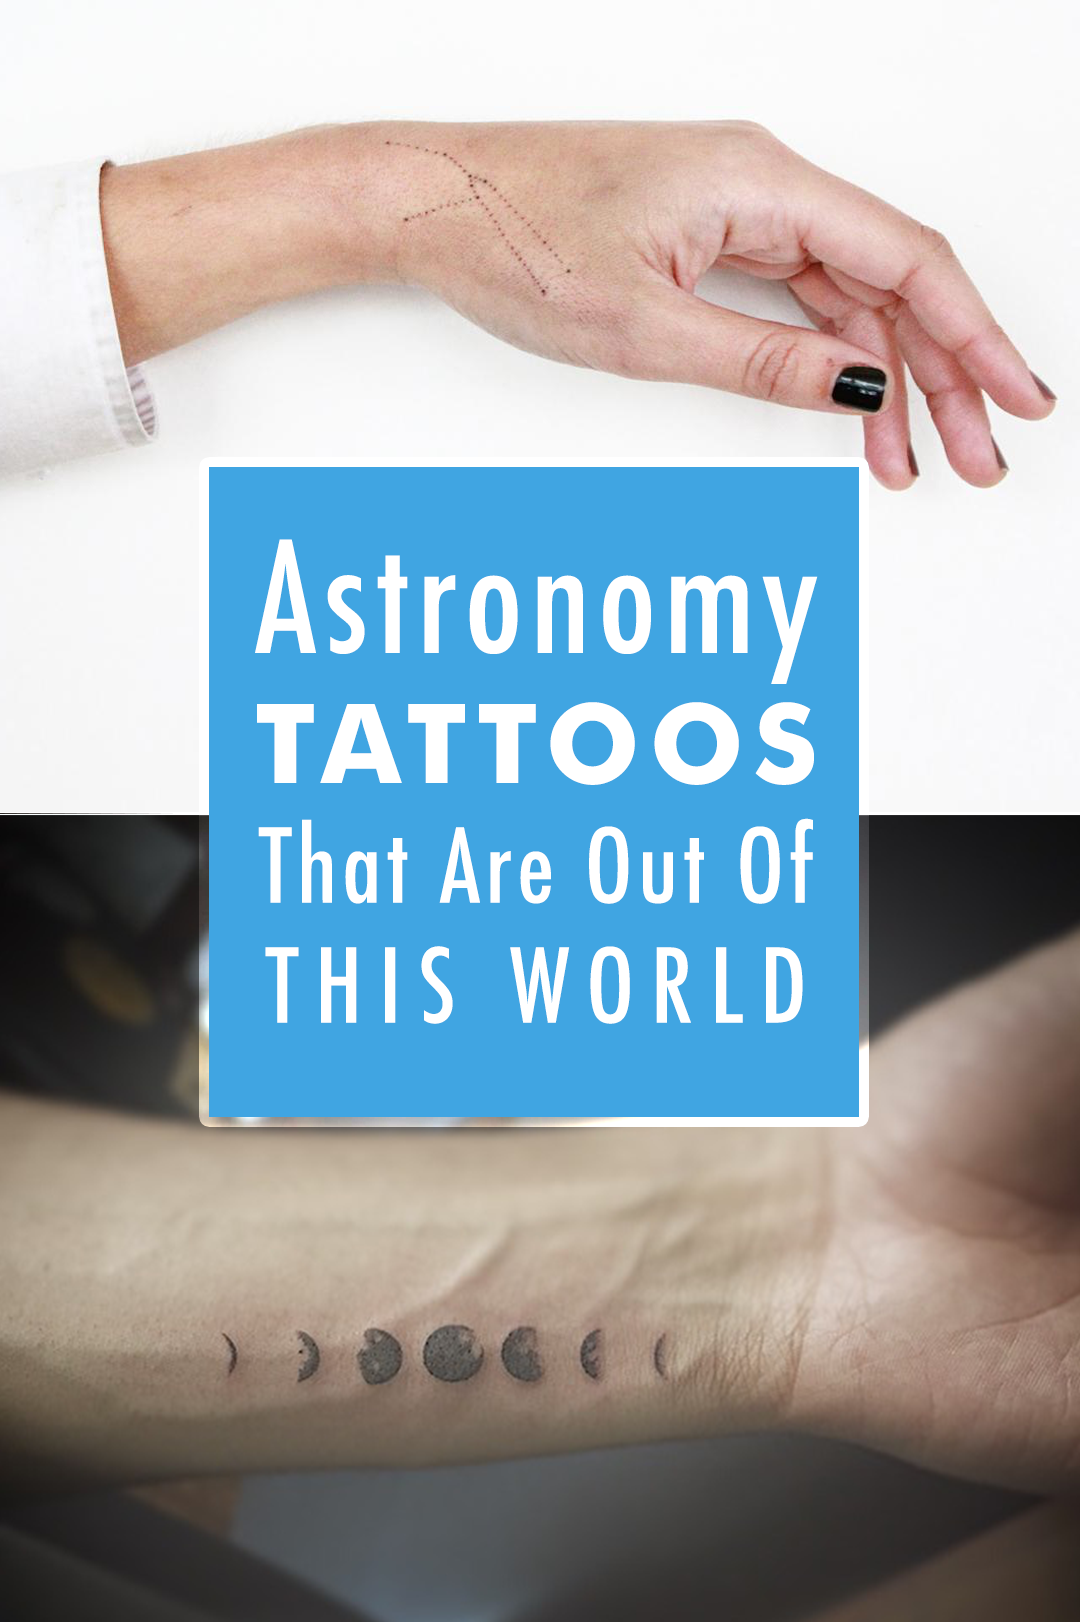 Small tattoo design ideas pin by karla sanchez on tattoous  pinterest  astronomy tattoo